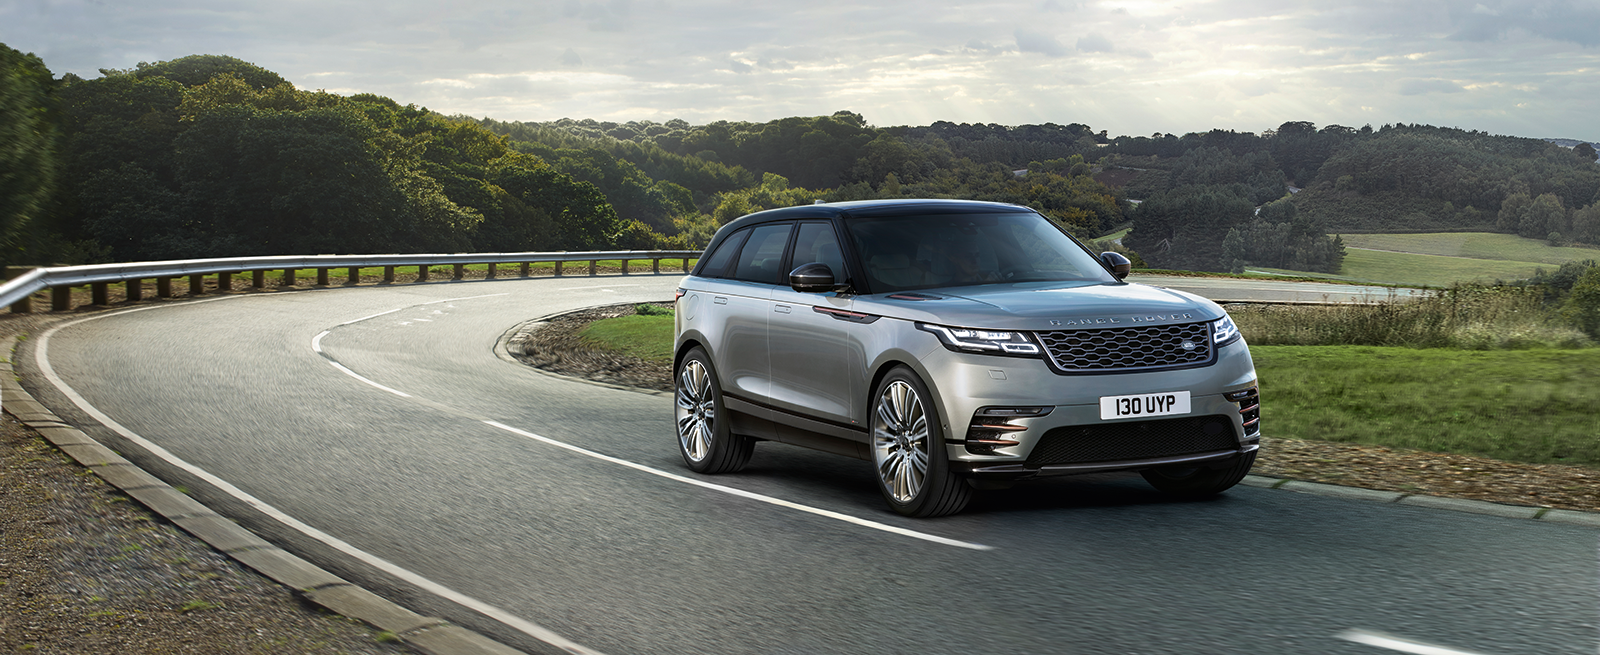 Silver Range Rover Velar Driving On A Winding Country Road